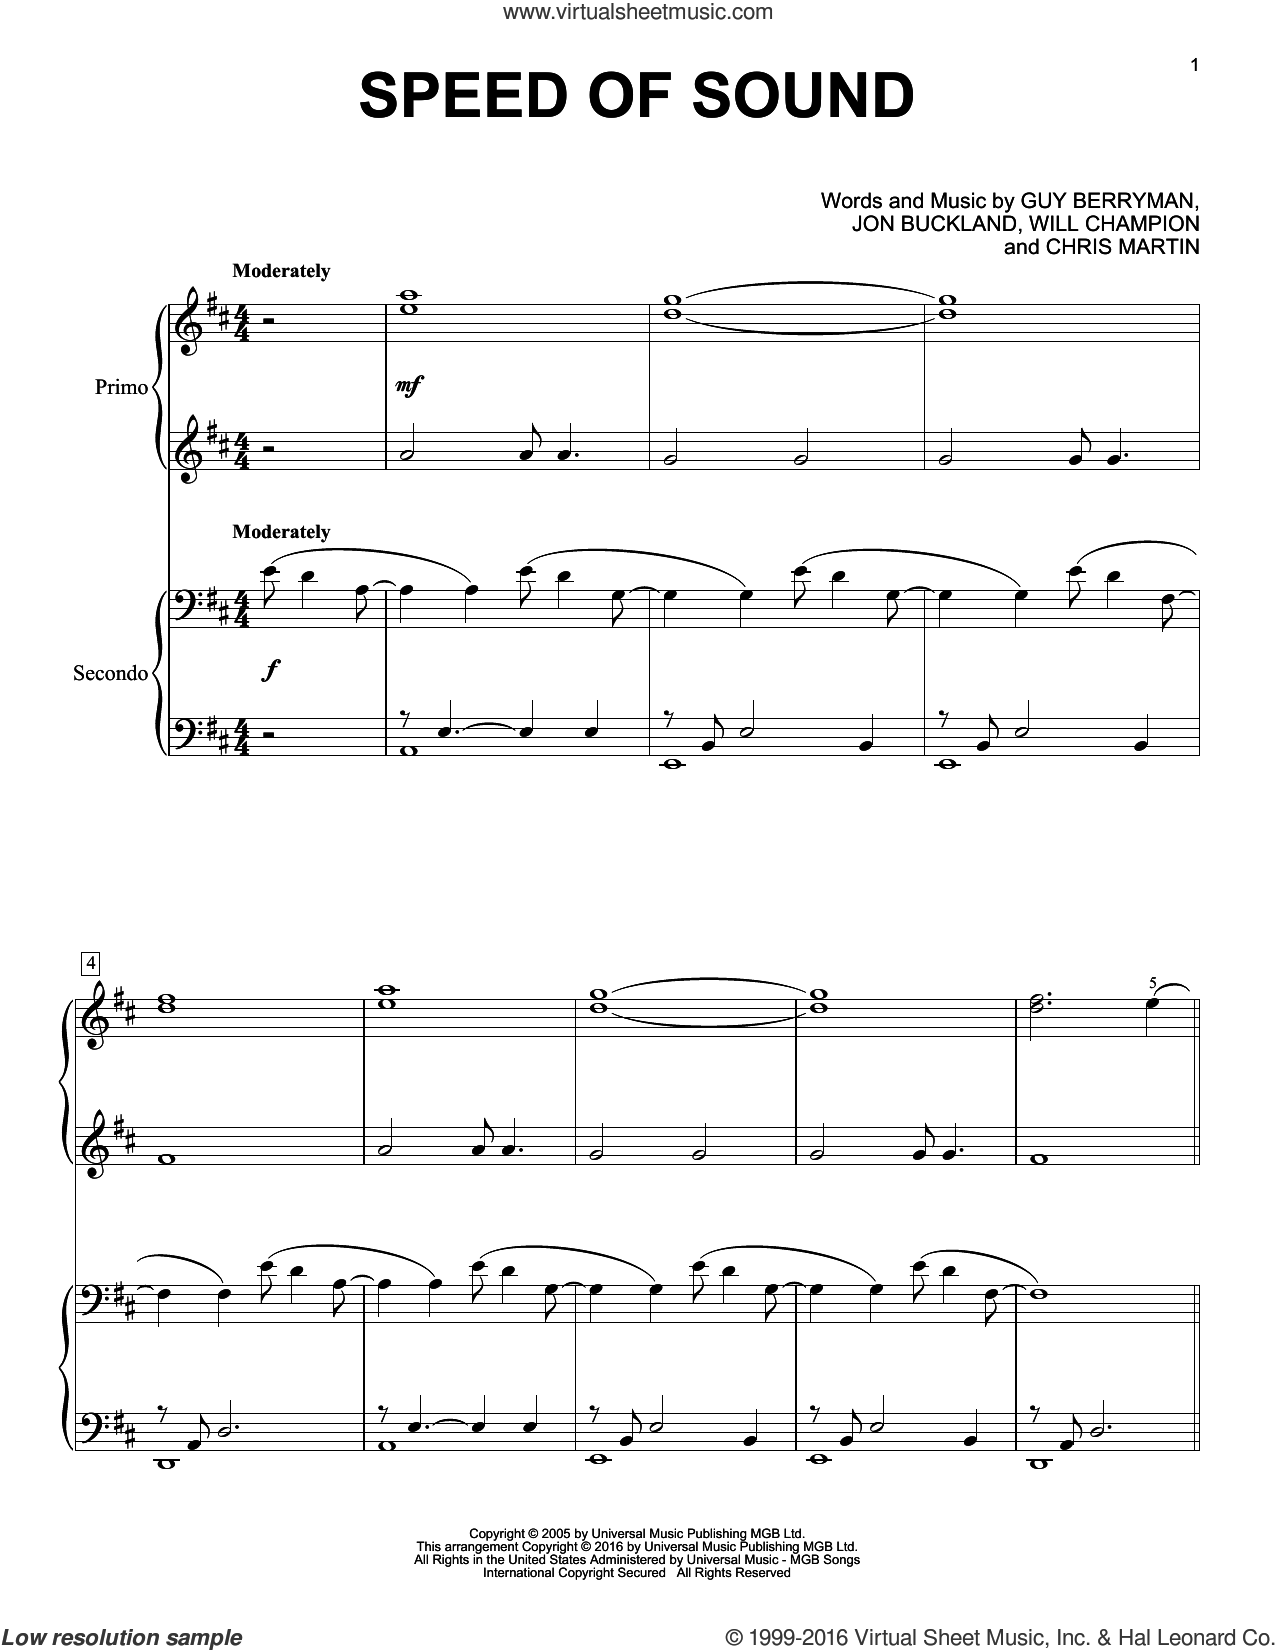 Speed Of Sound sheet music for piano four hands by Coldplay, Chris Martin, Guy Berryman, Jon Buckland and Will Champion, intermediate